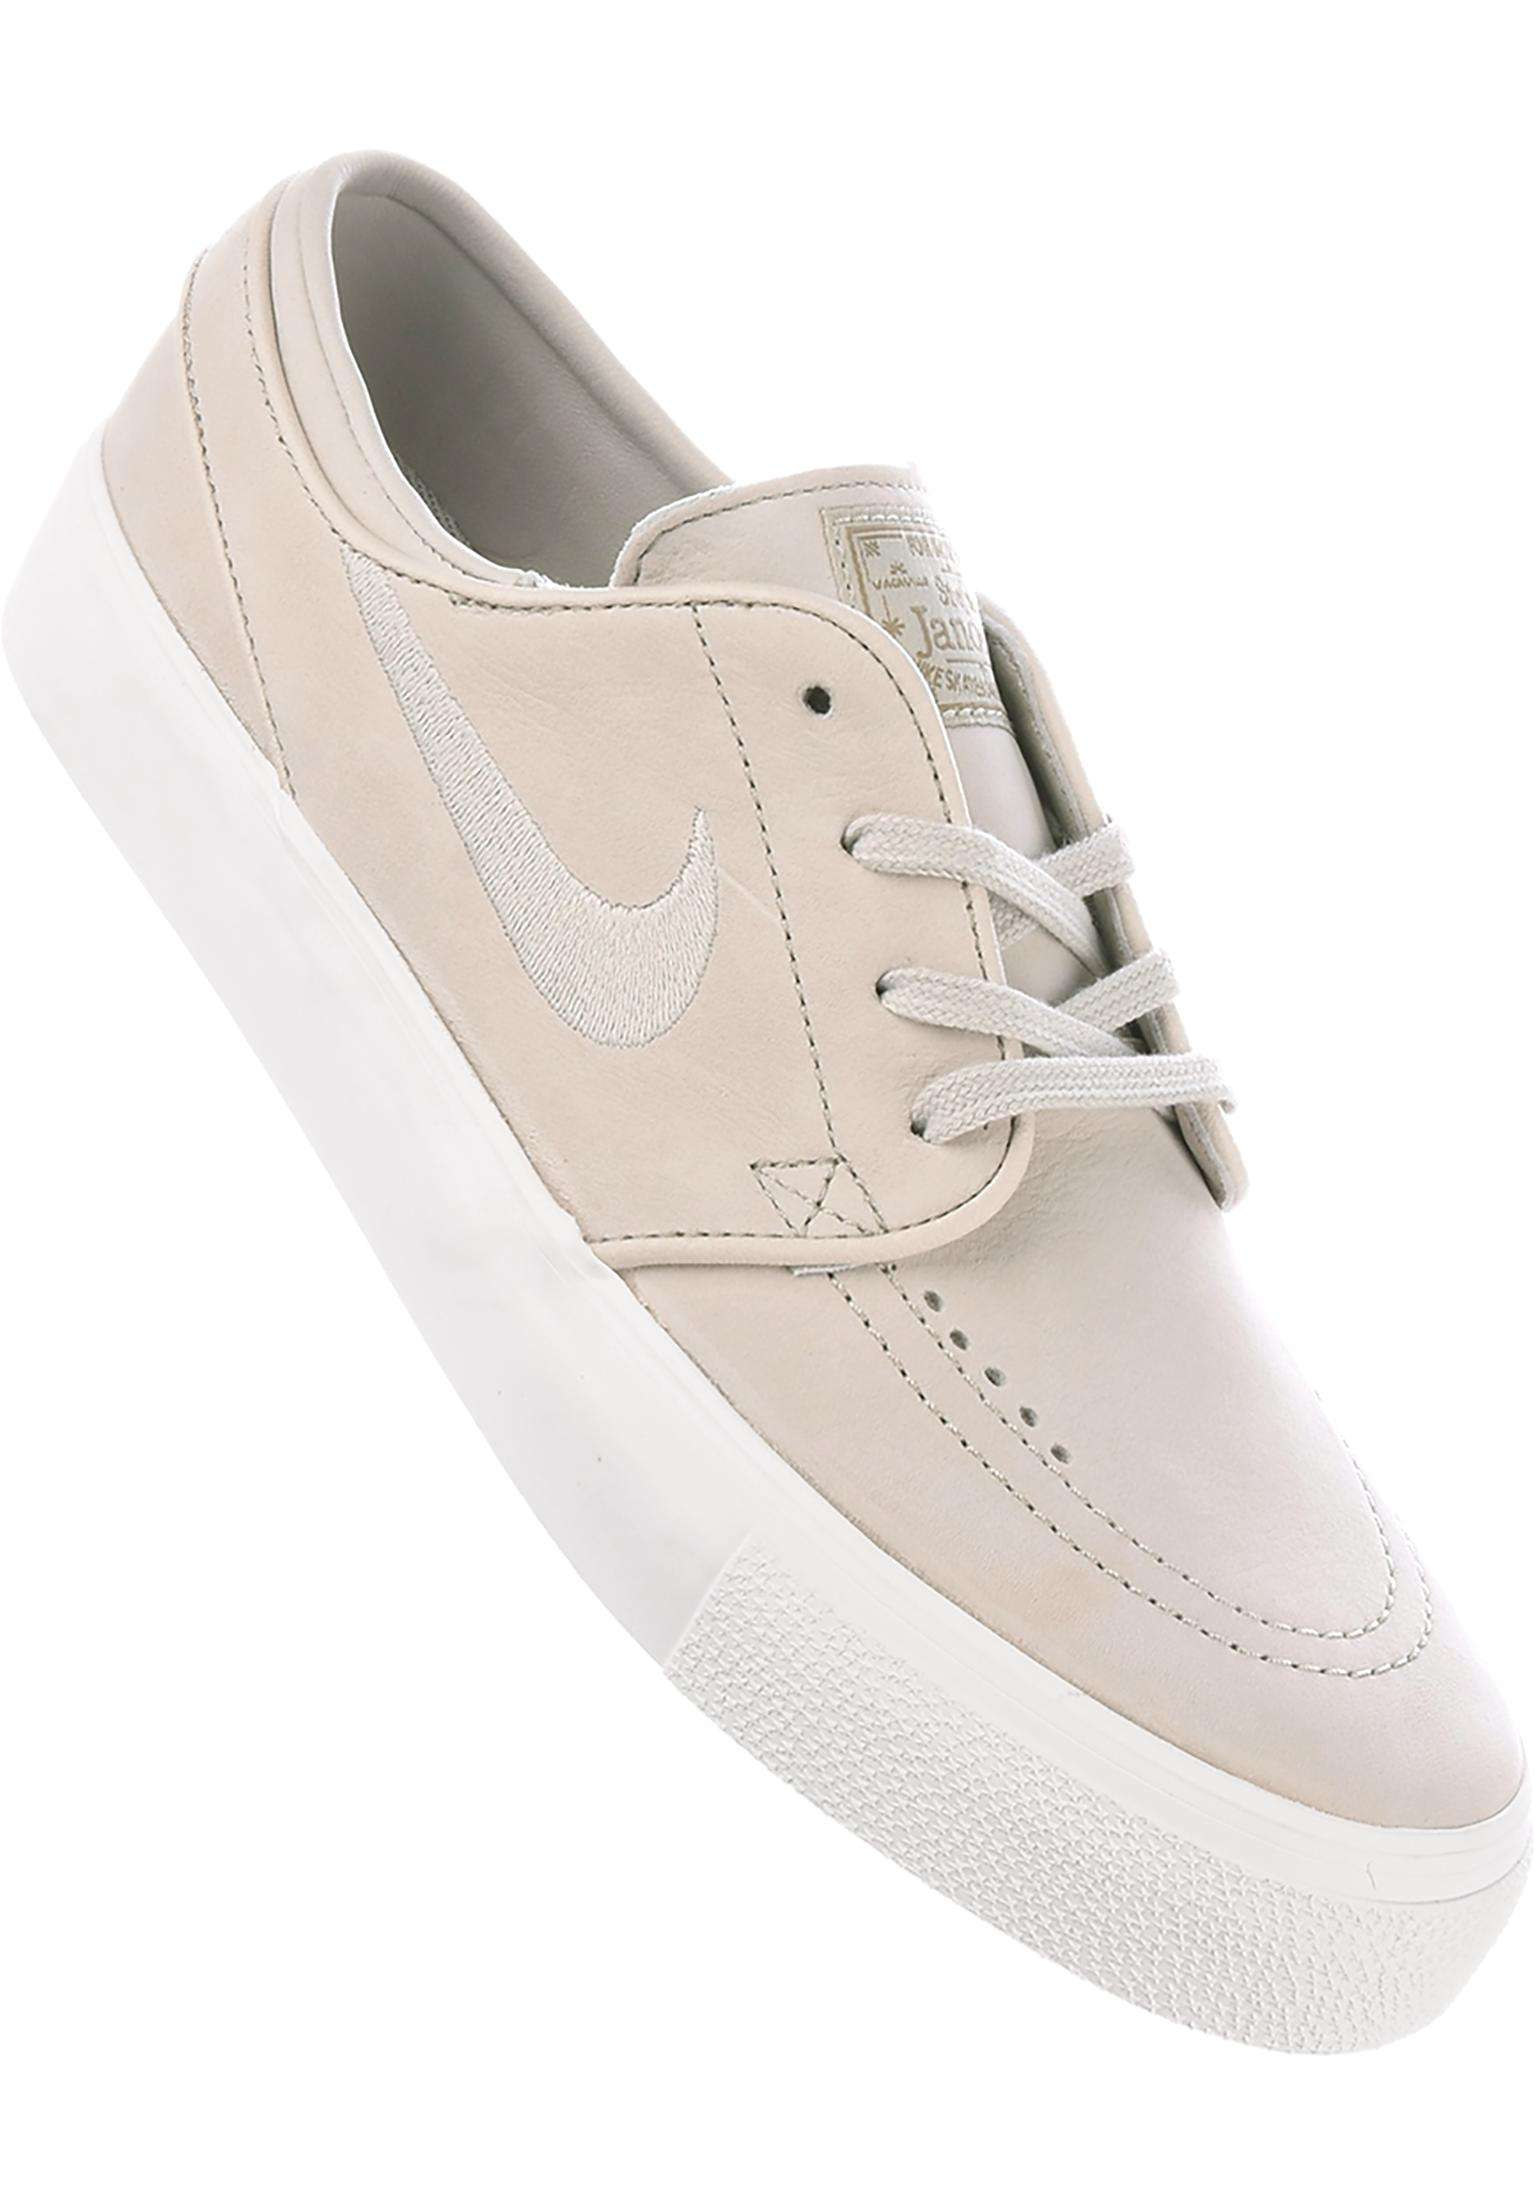 63a66311d Zoom Stefan Janoski HT Deconstructed Nike SB All Shoes in lightbone- summitwhite for Men